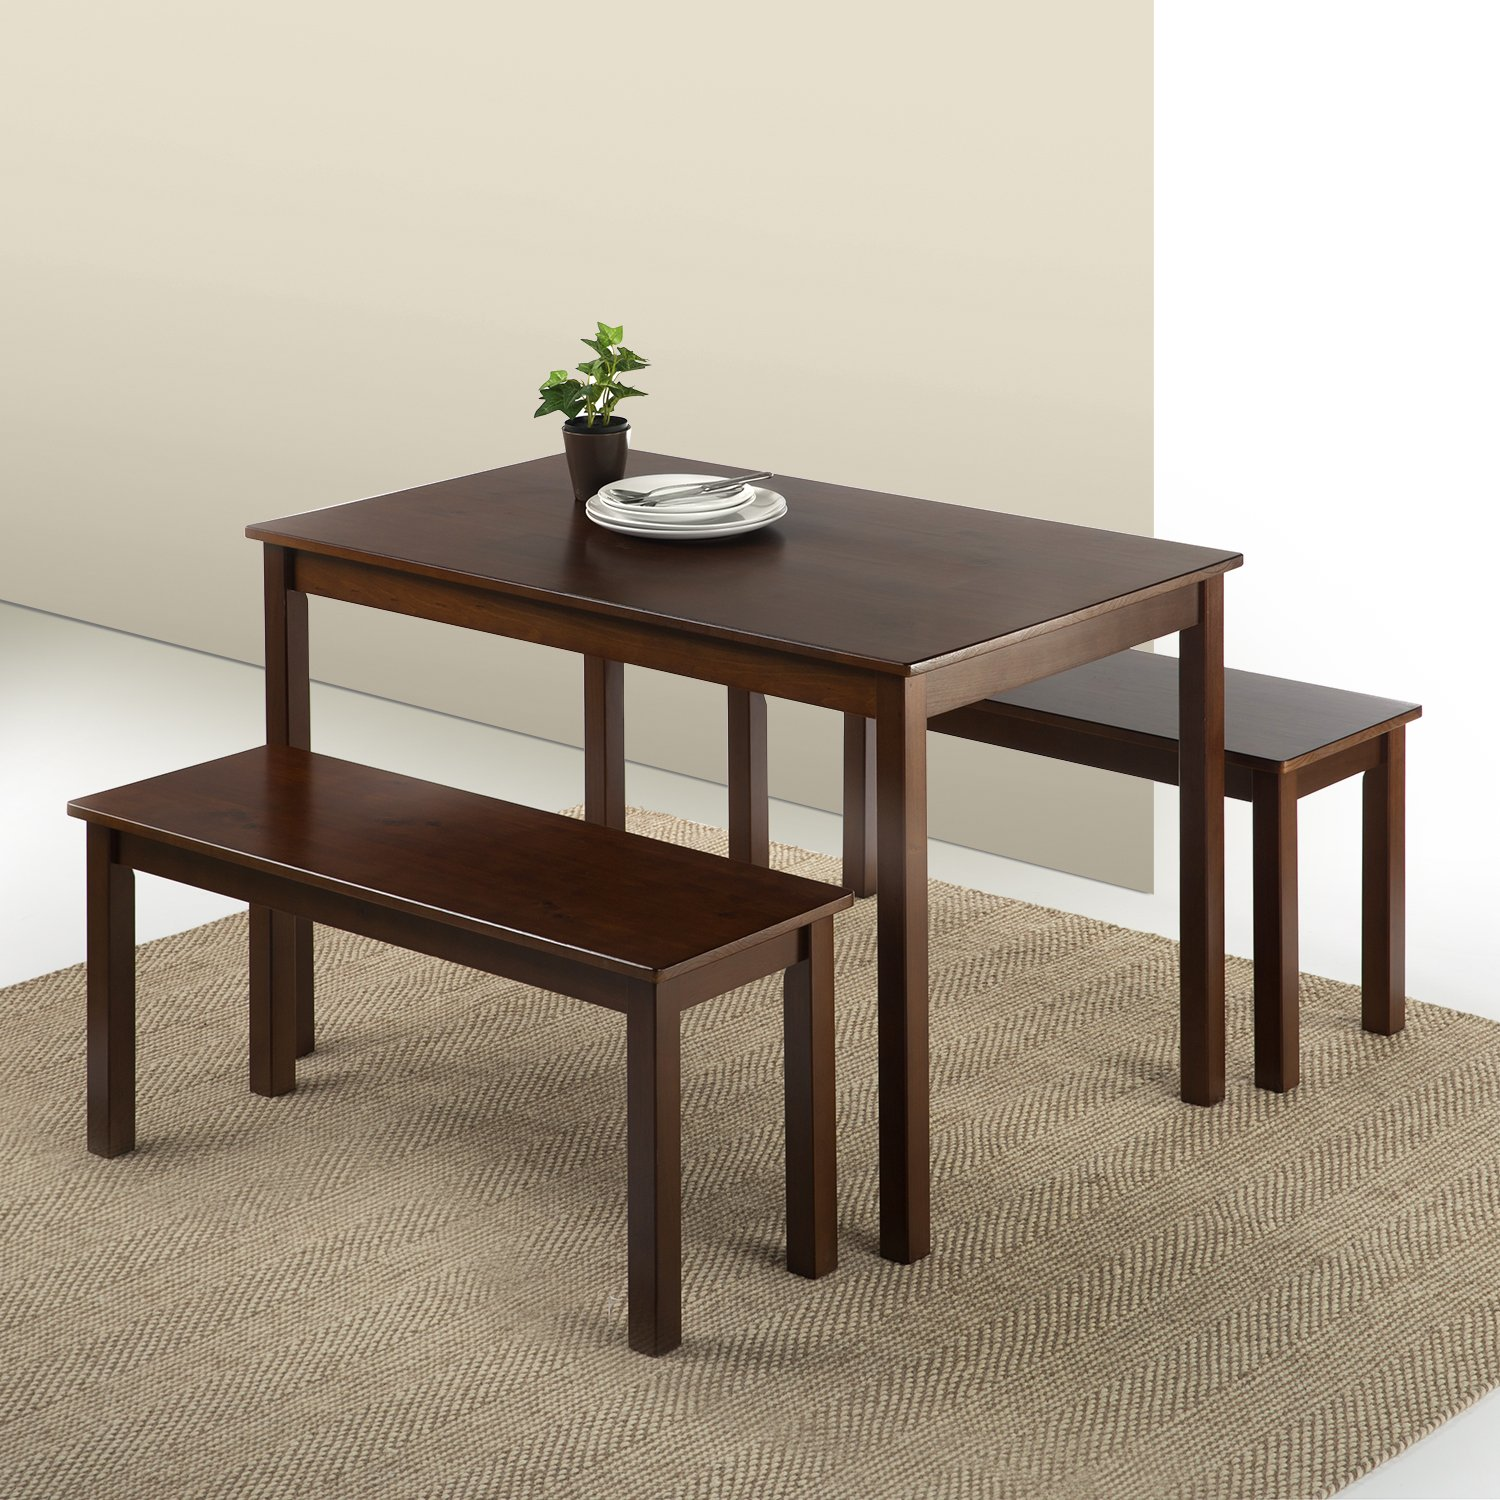 Zinus Juliet Espresso Wood Dining Table with Two Benches / 3 Piece Set by Zinus